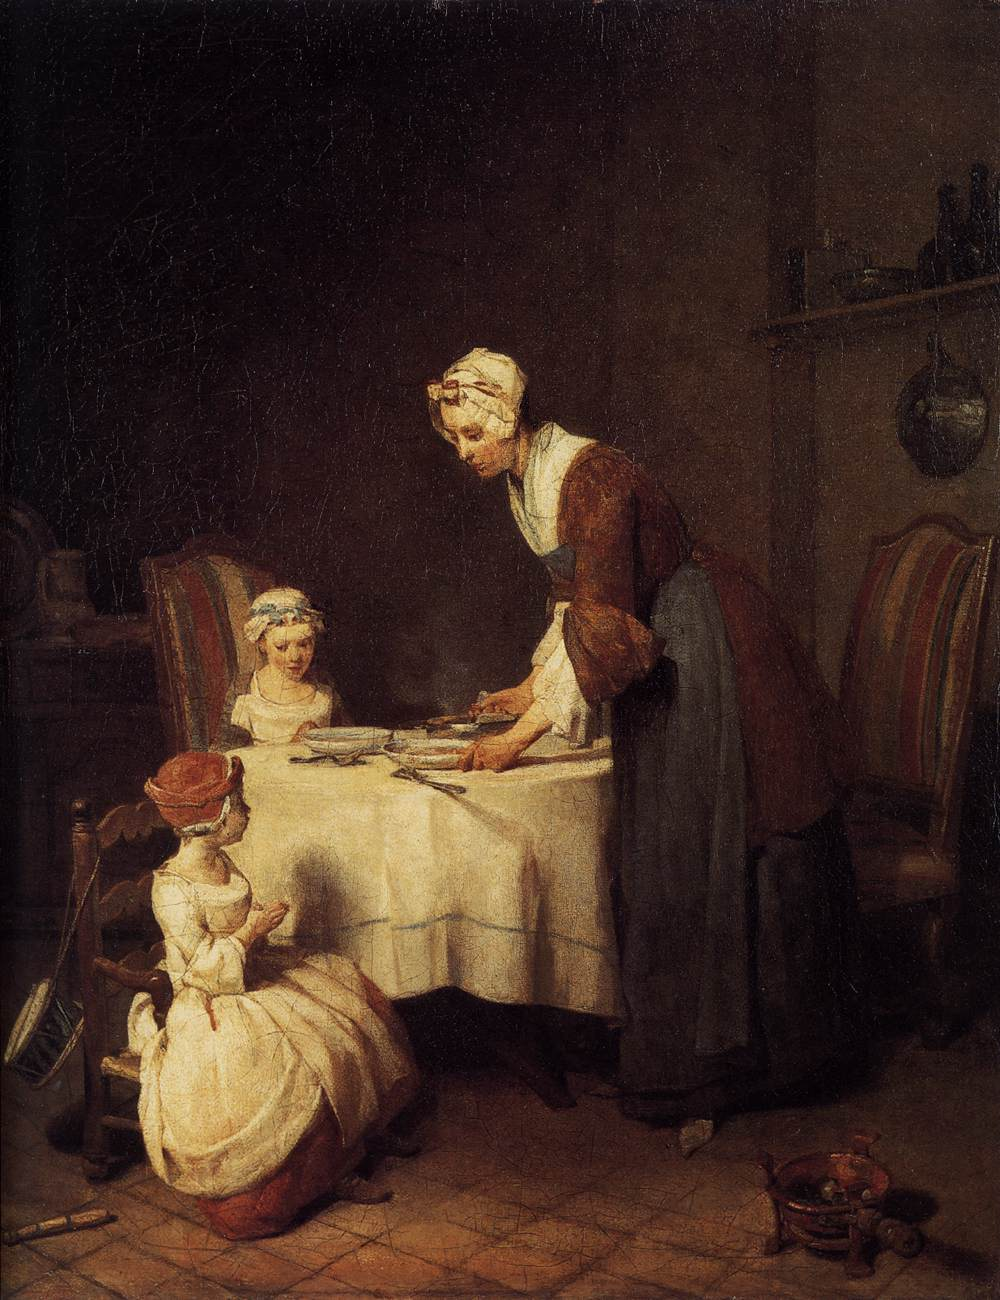 The Prayer before Meal 1740 - Jean-Baptiste-Simeon Chardin